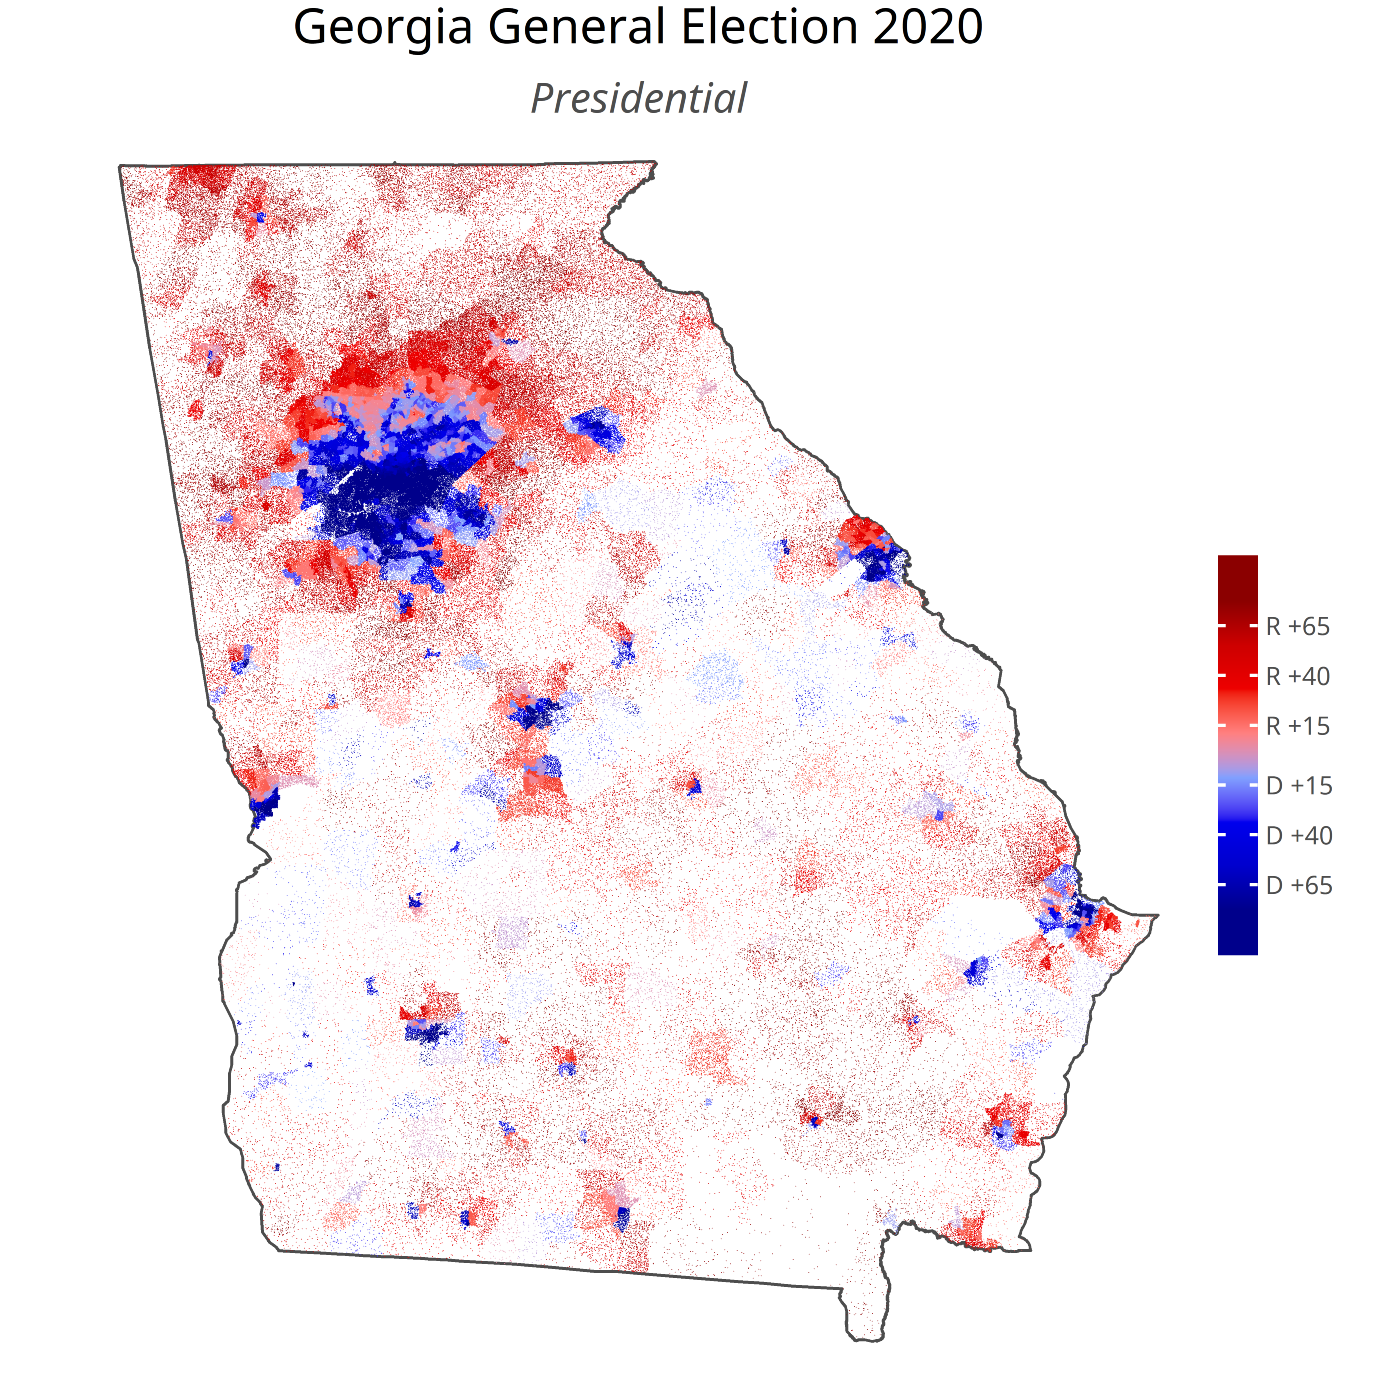 Dot density map of the November 3, 2020 Presidential Election in Georgia